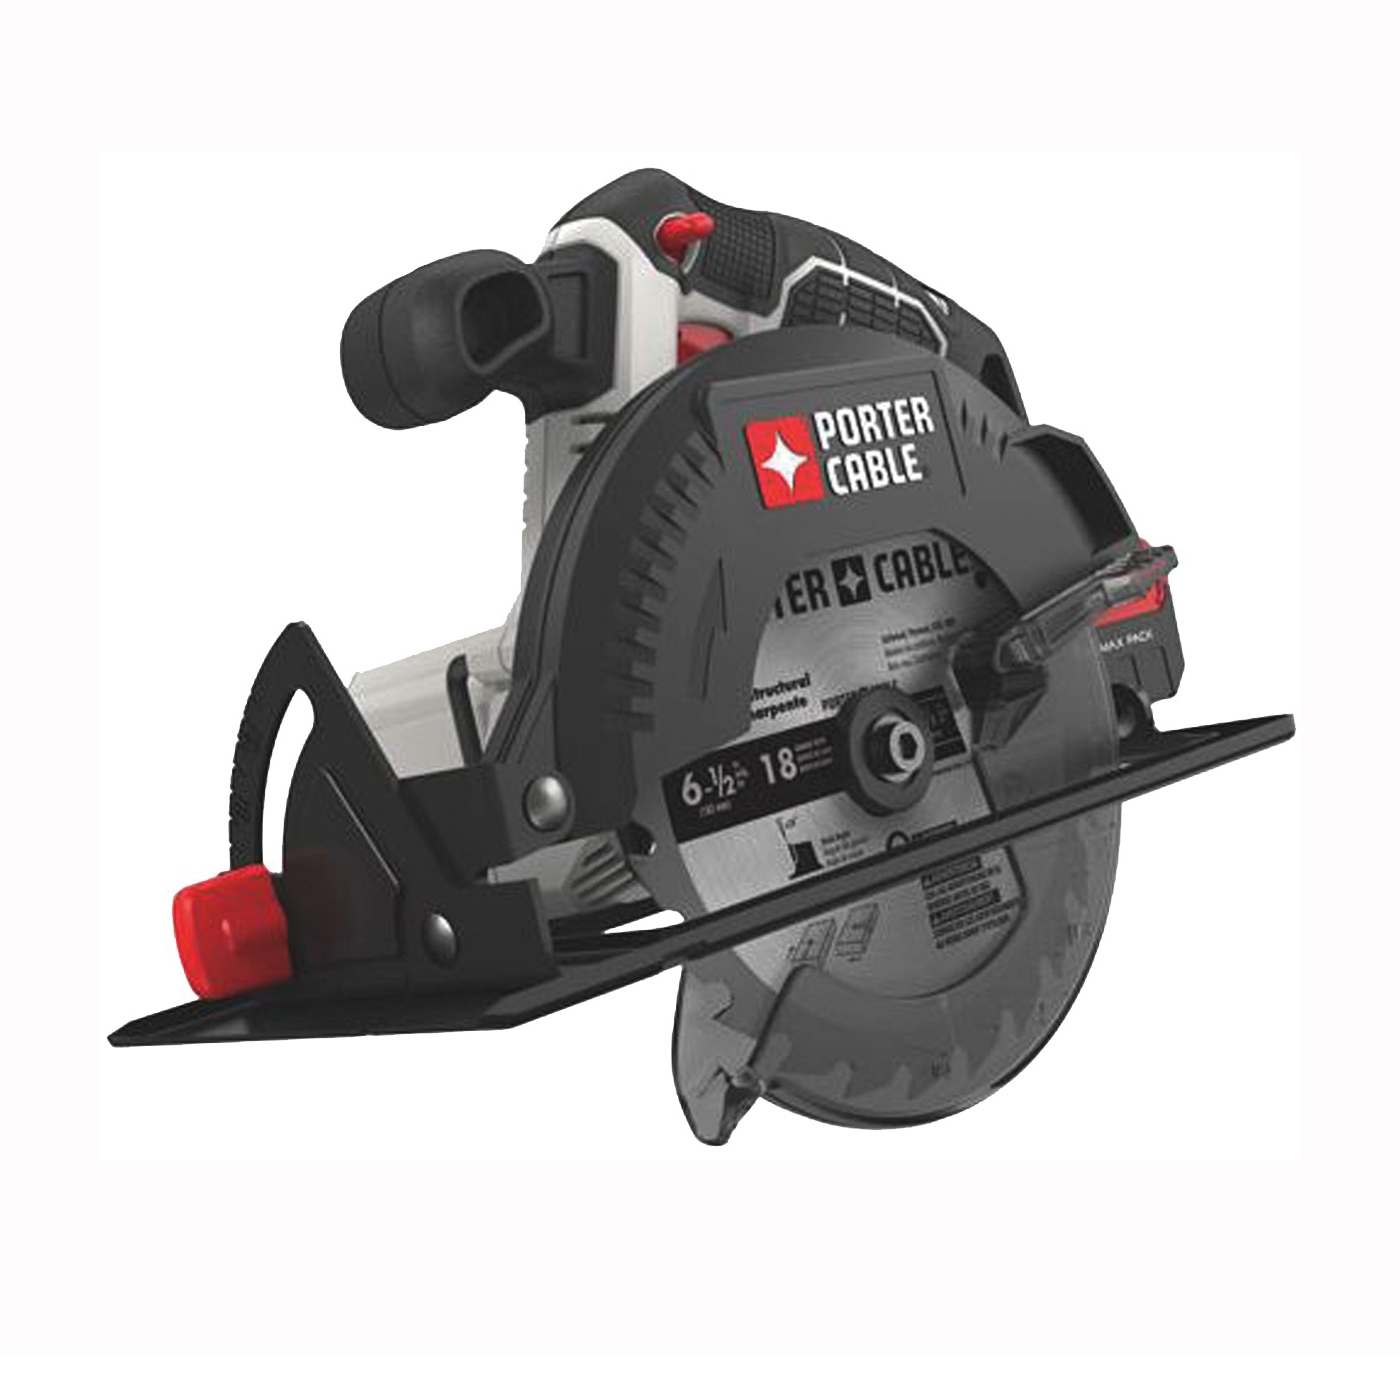 Picture of PORTER-CABLE PCC660B Circular Saw, Bare Tool, 20 V Battery, 1.3 Ah, 6-1/2 in Dia Blade, 0 to 50 deg Bevel